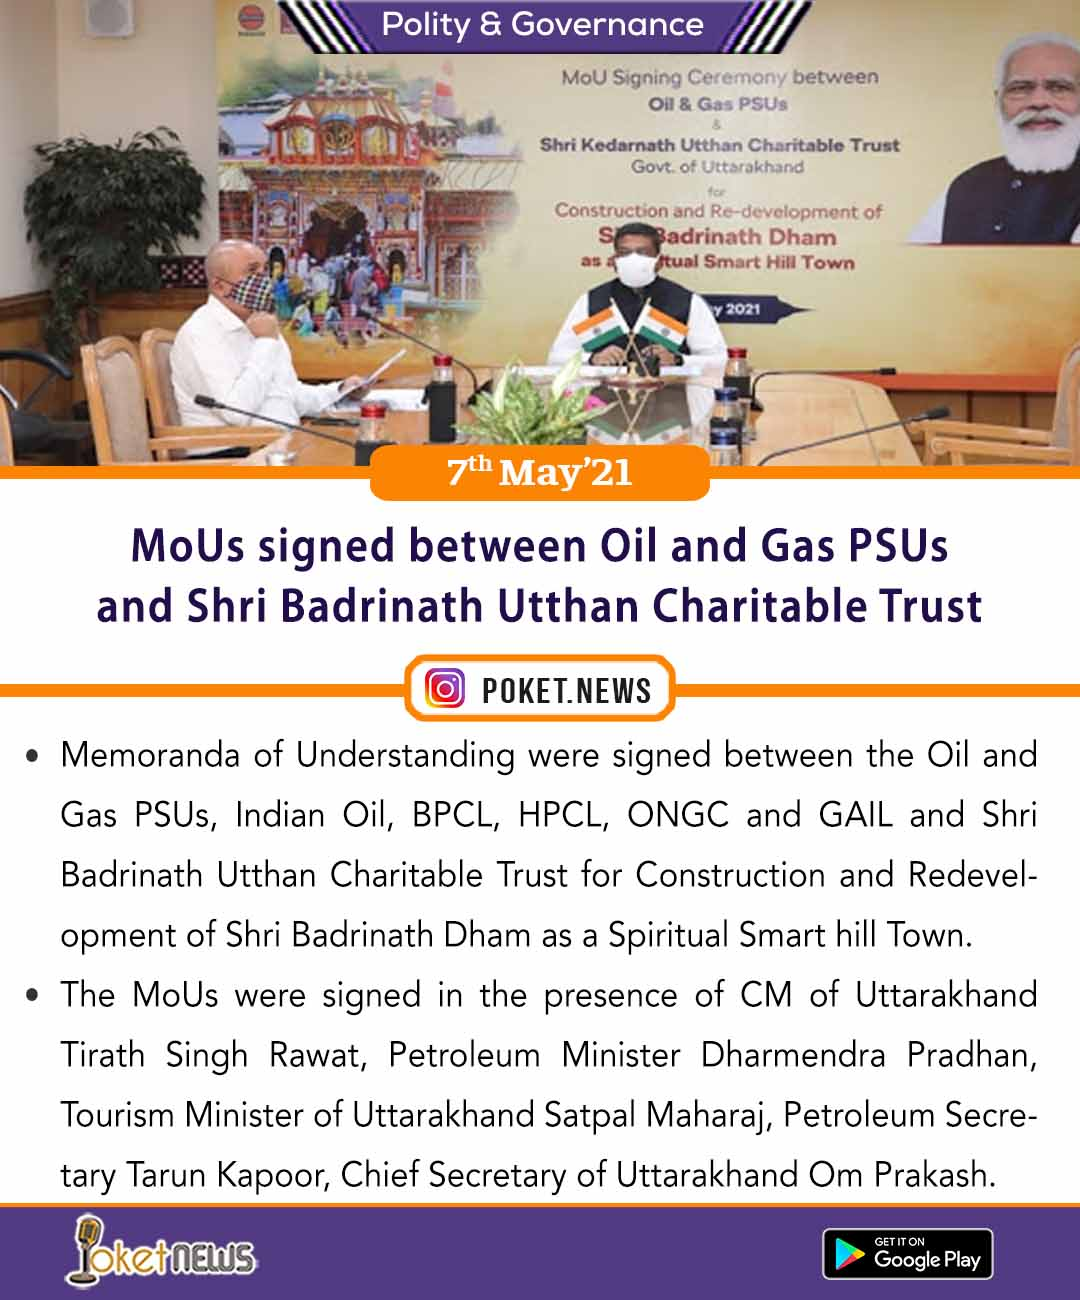 MoUs signed between Oil and Gas PSUs and Shri Badrinath Utthan Charitable Trust